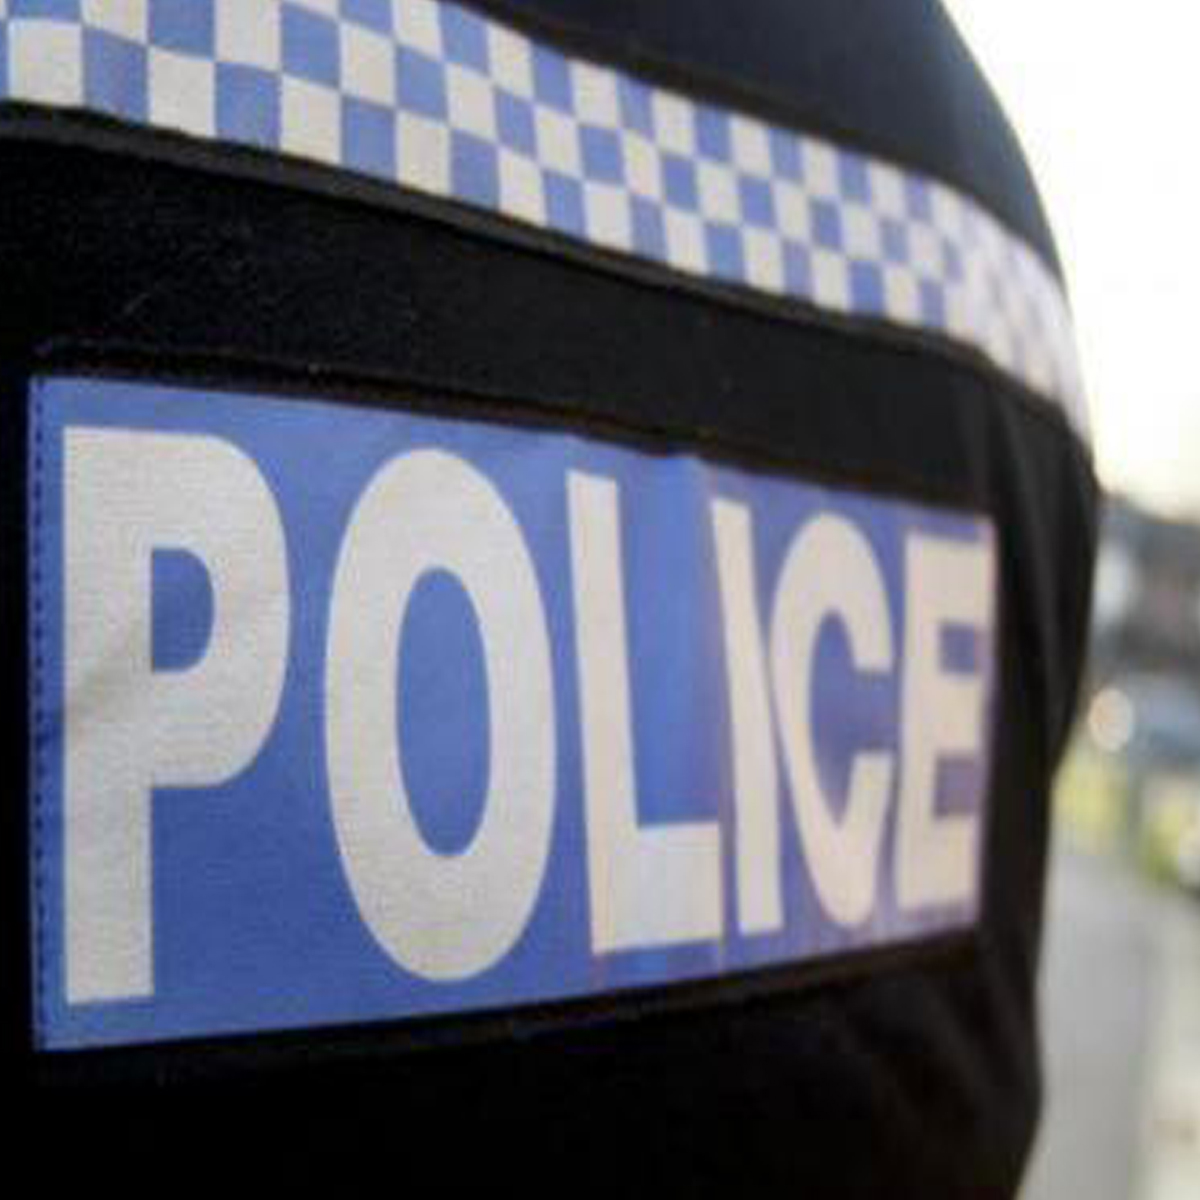 Two bodies found in a Boxted home